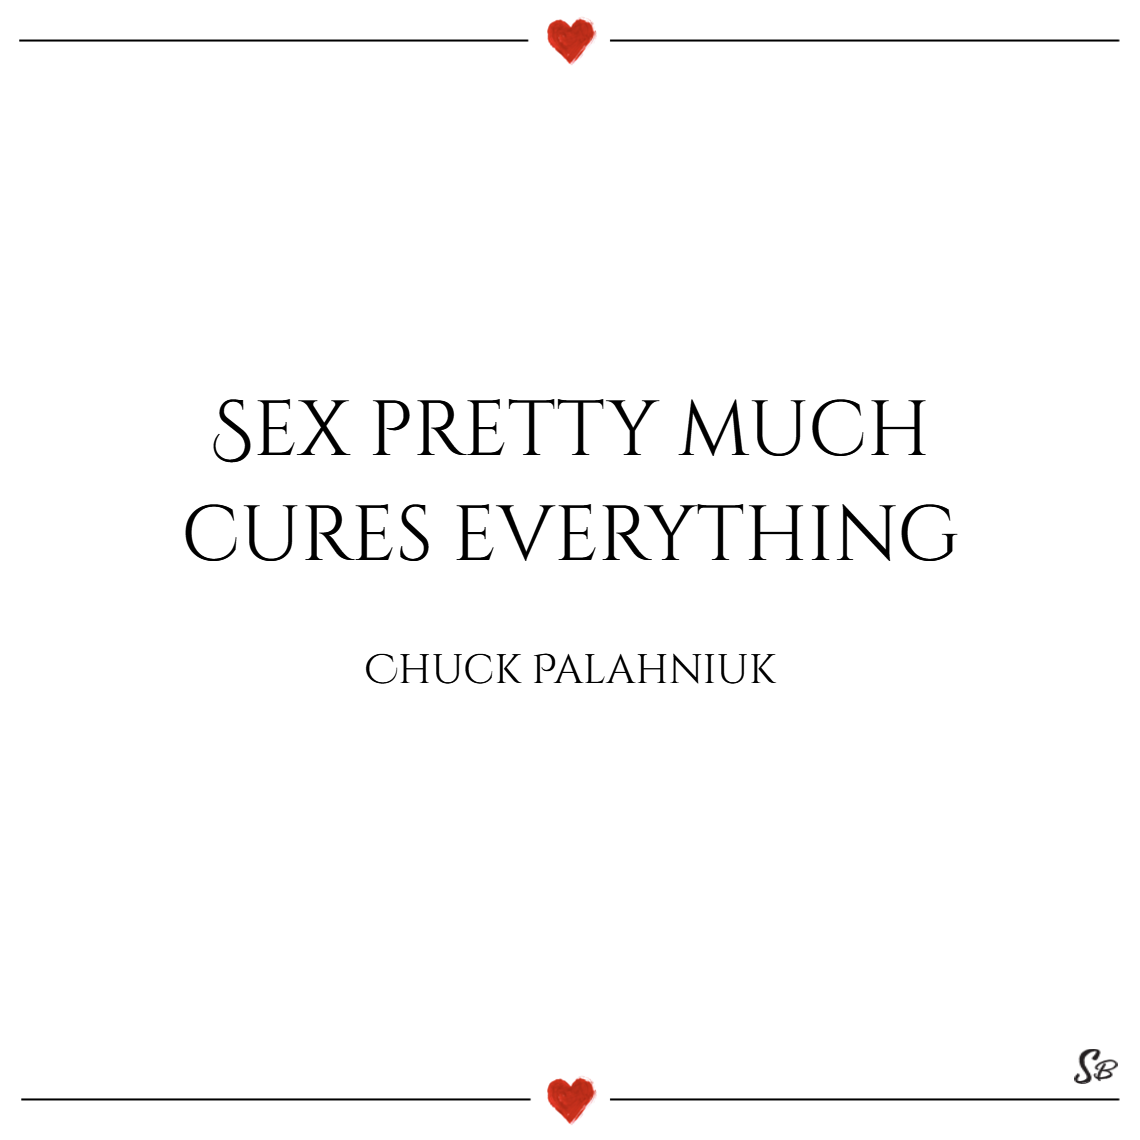 Sex pretty much cures everything. – chuck palahniuk